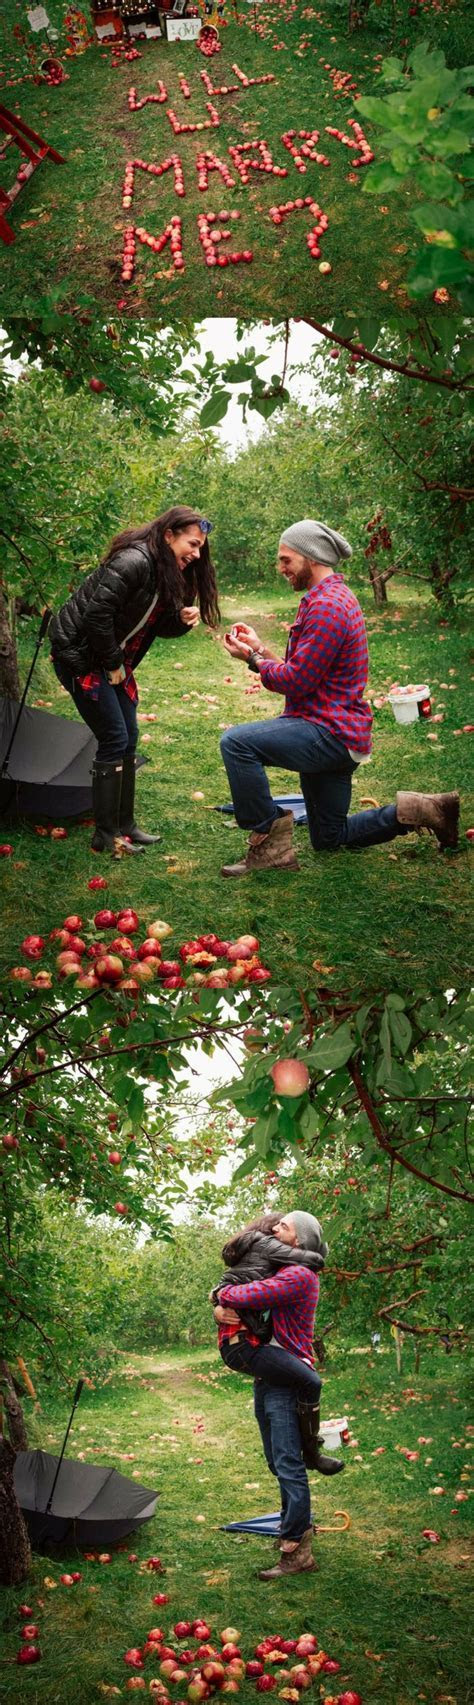 Best 20  Proposal ideas ideas on Pinterest   Wedding